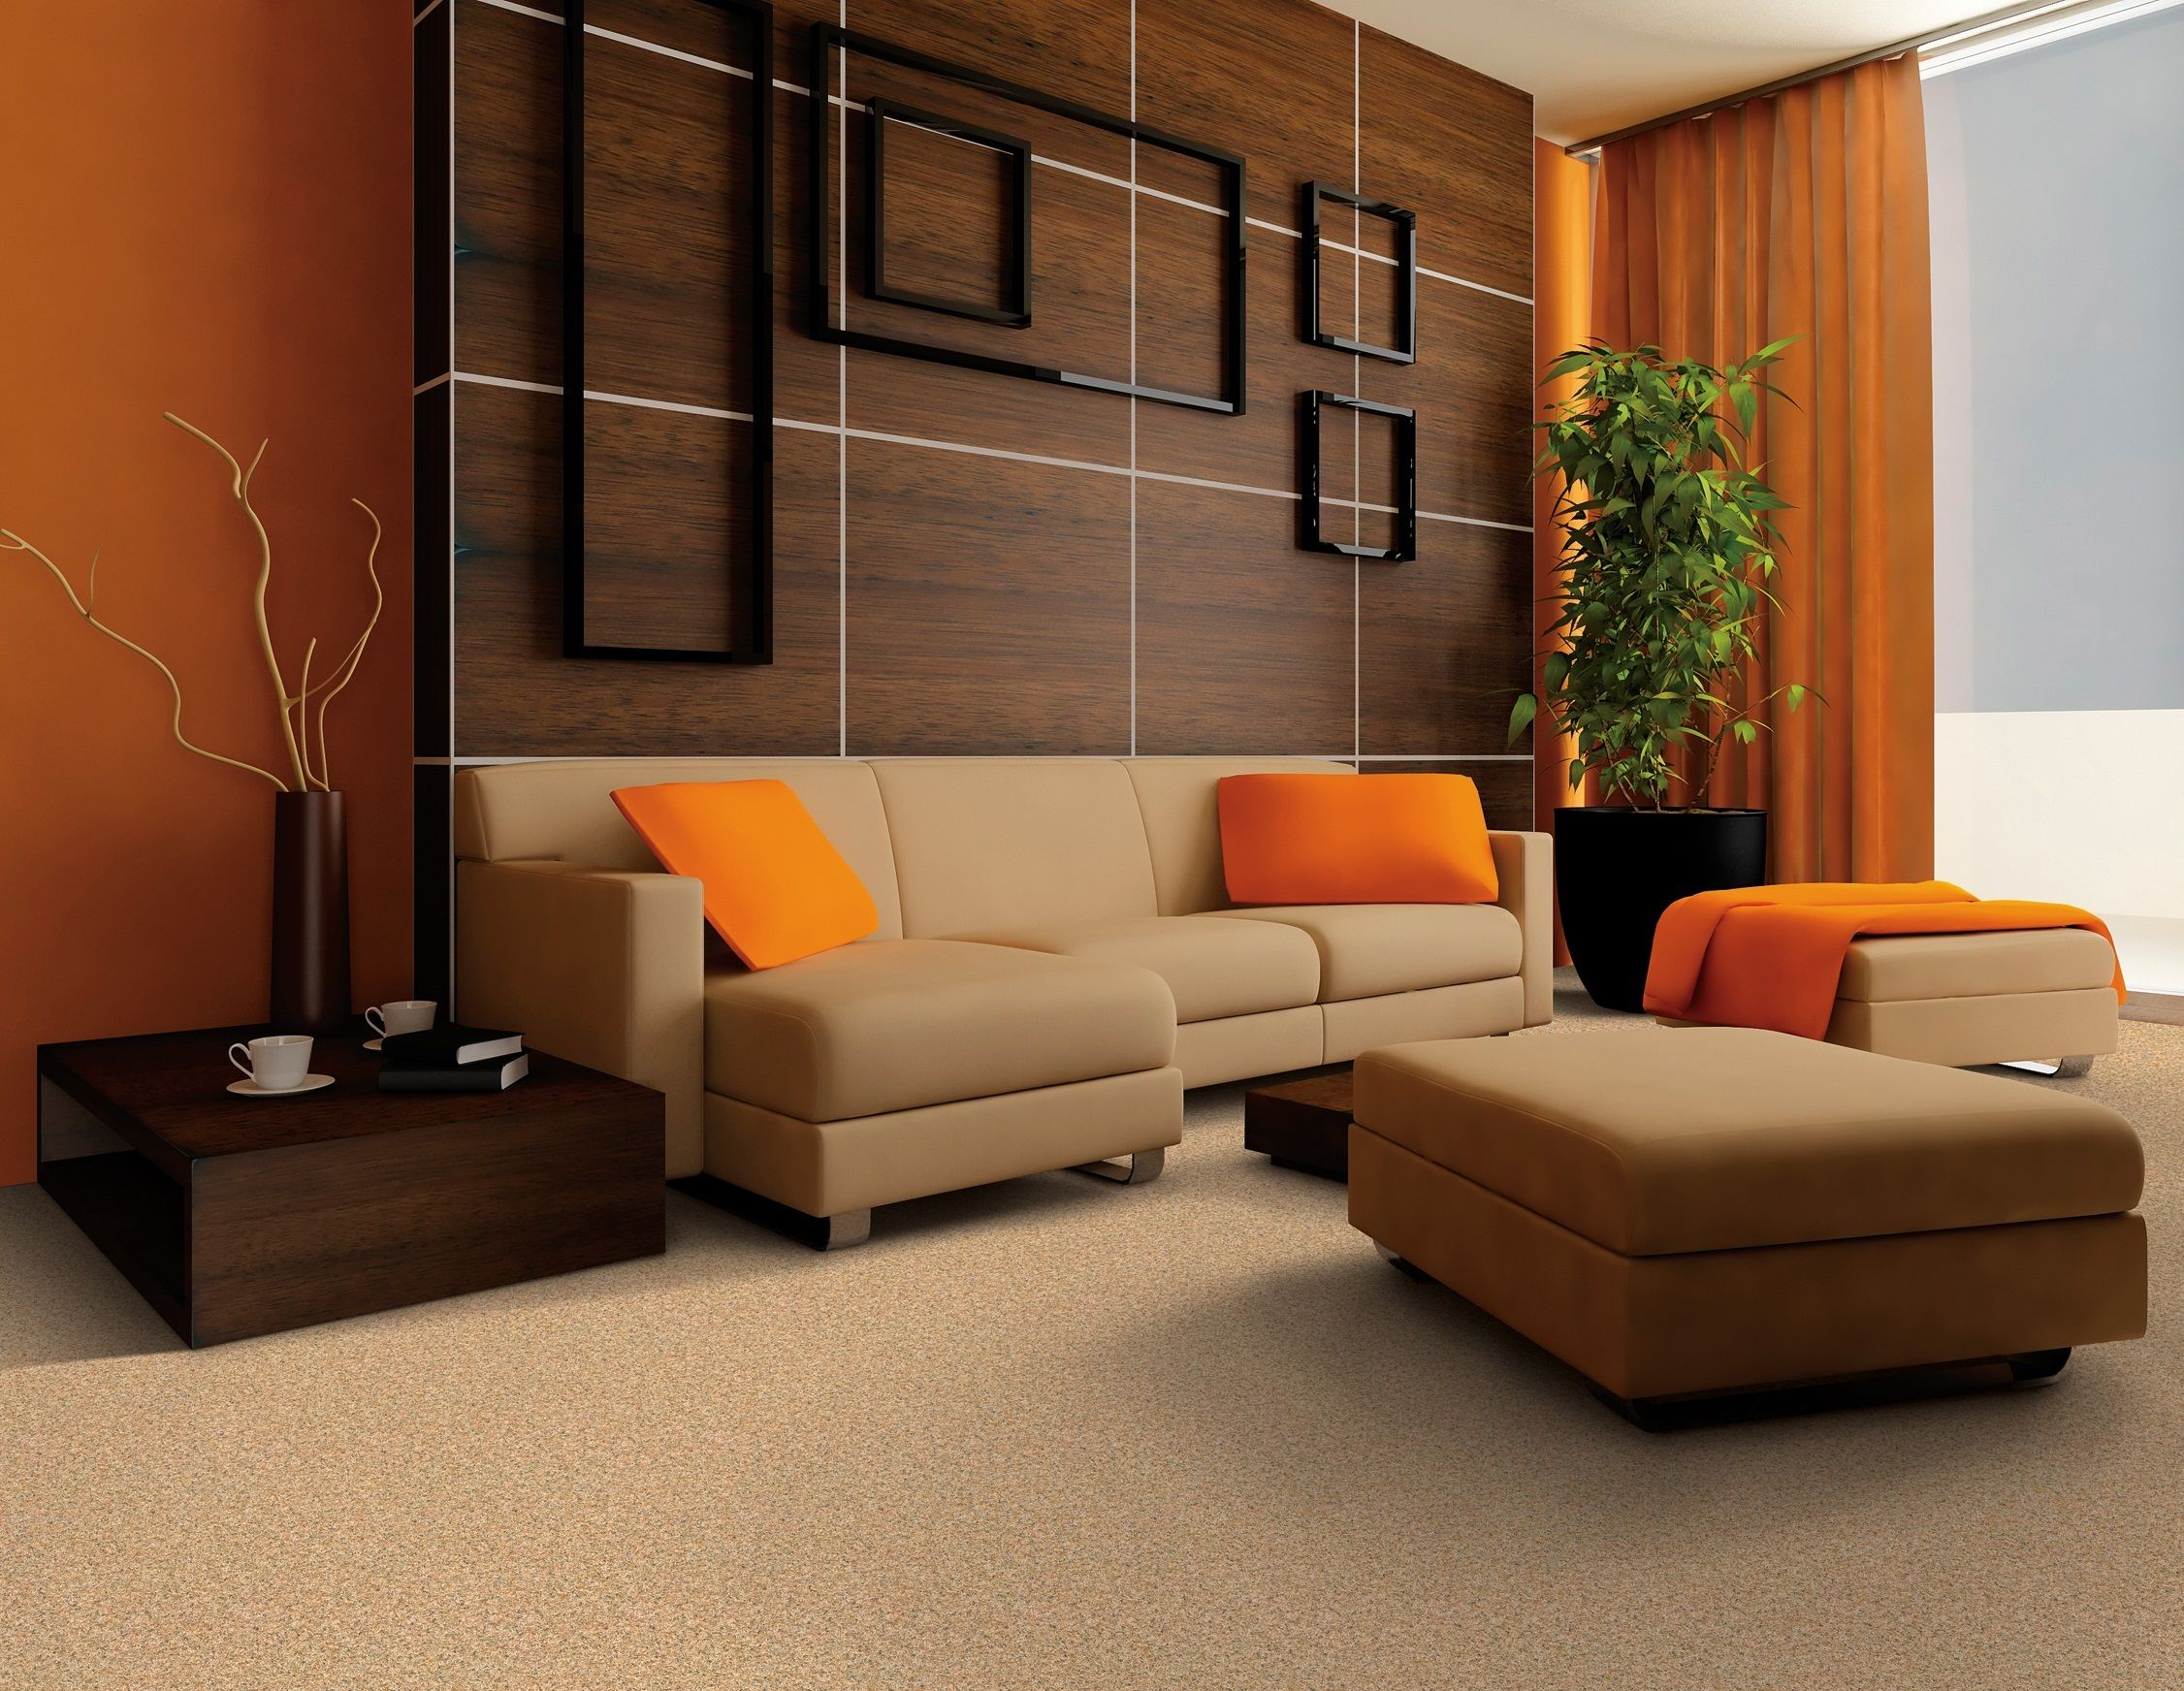 Warm Color Wall Paint And Brown Shades Sofa Design Ideas For - Wall paint designs for living room